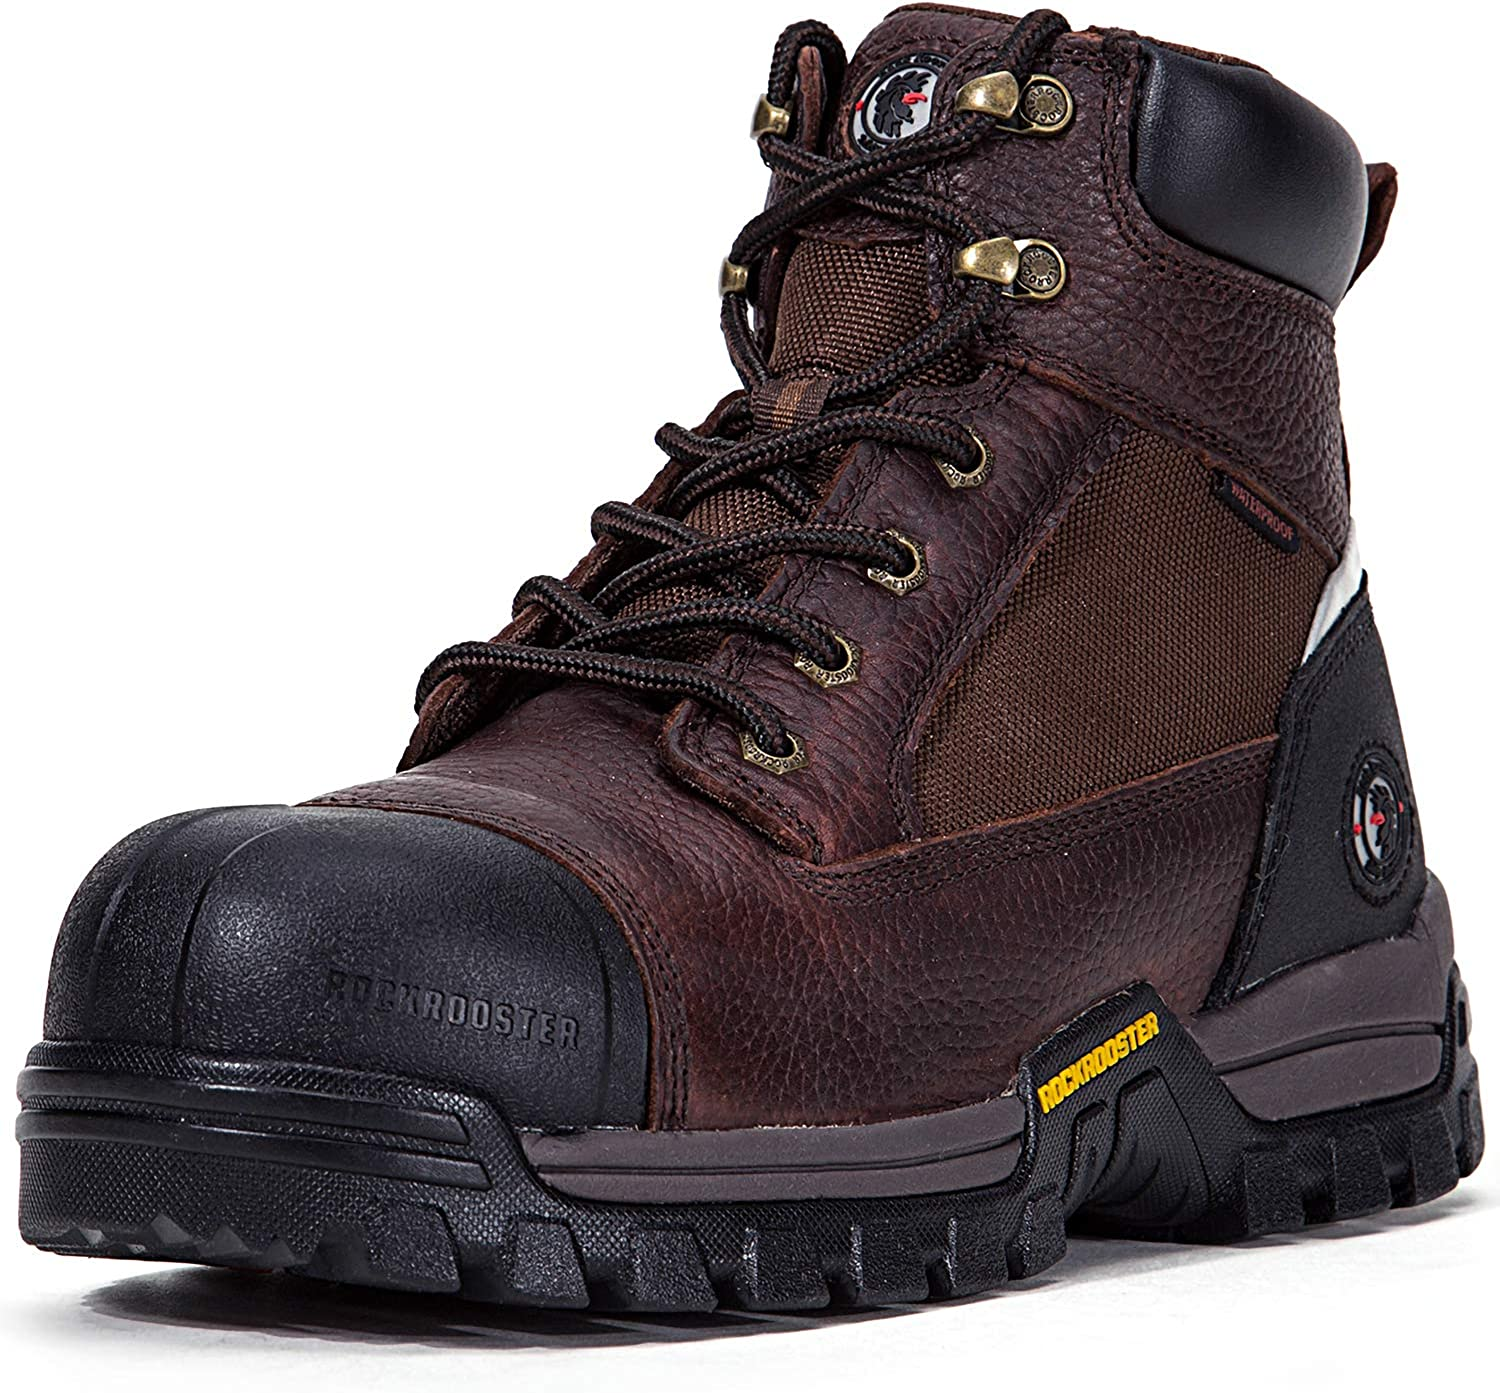 MENS COMPOSITE NON-METAL TOE CAP WORK SAFETY SHOES MENS TRAINERS WIDE BOOTS SZ